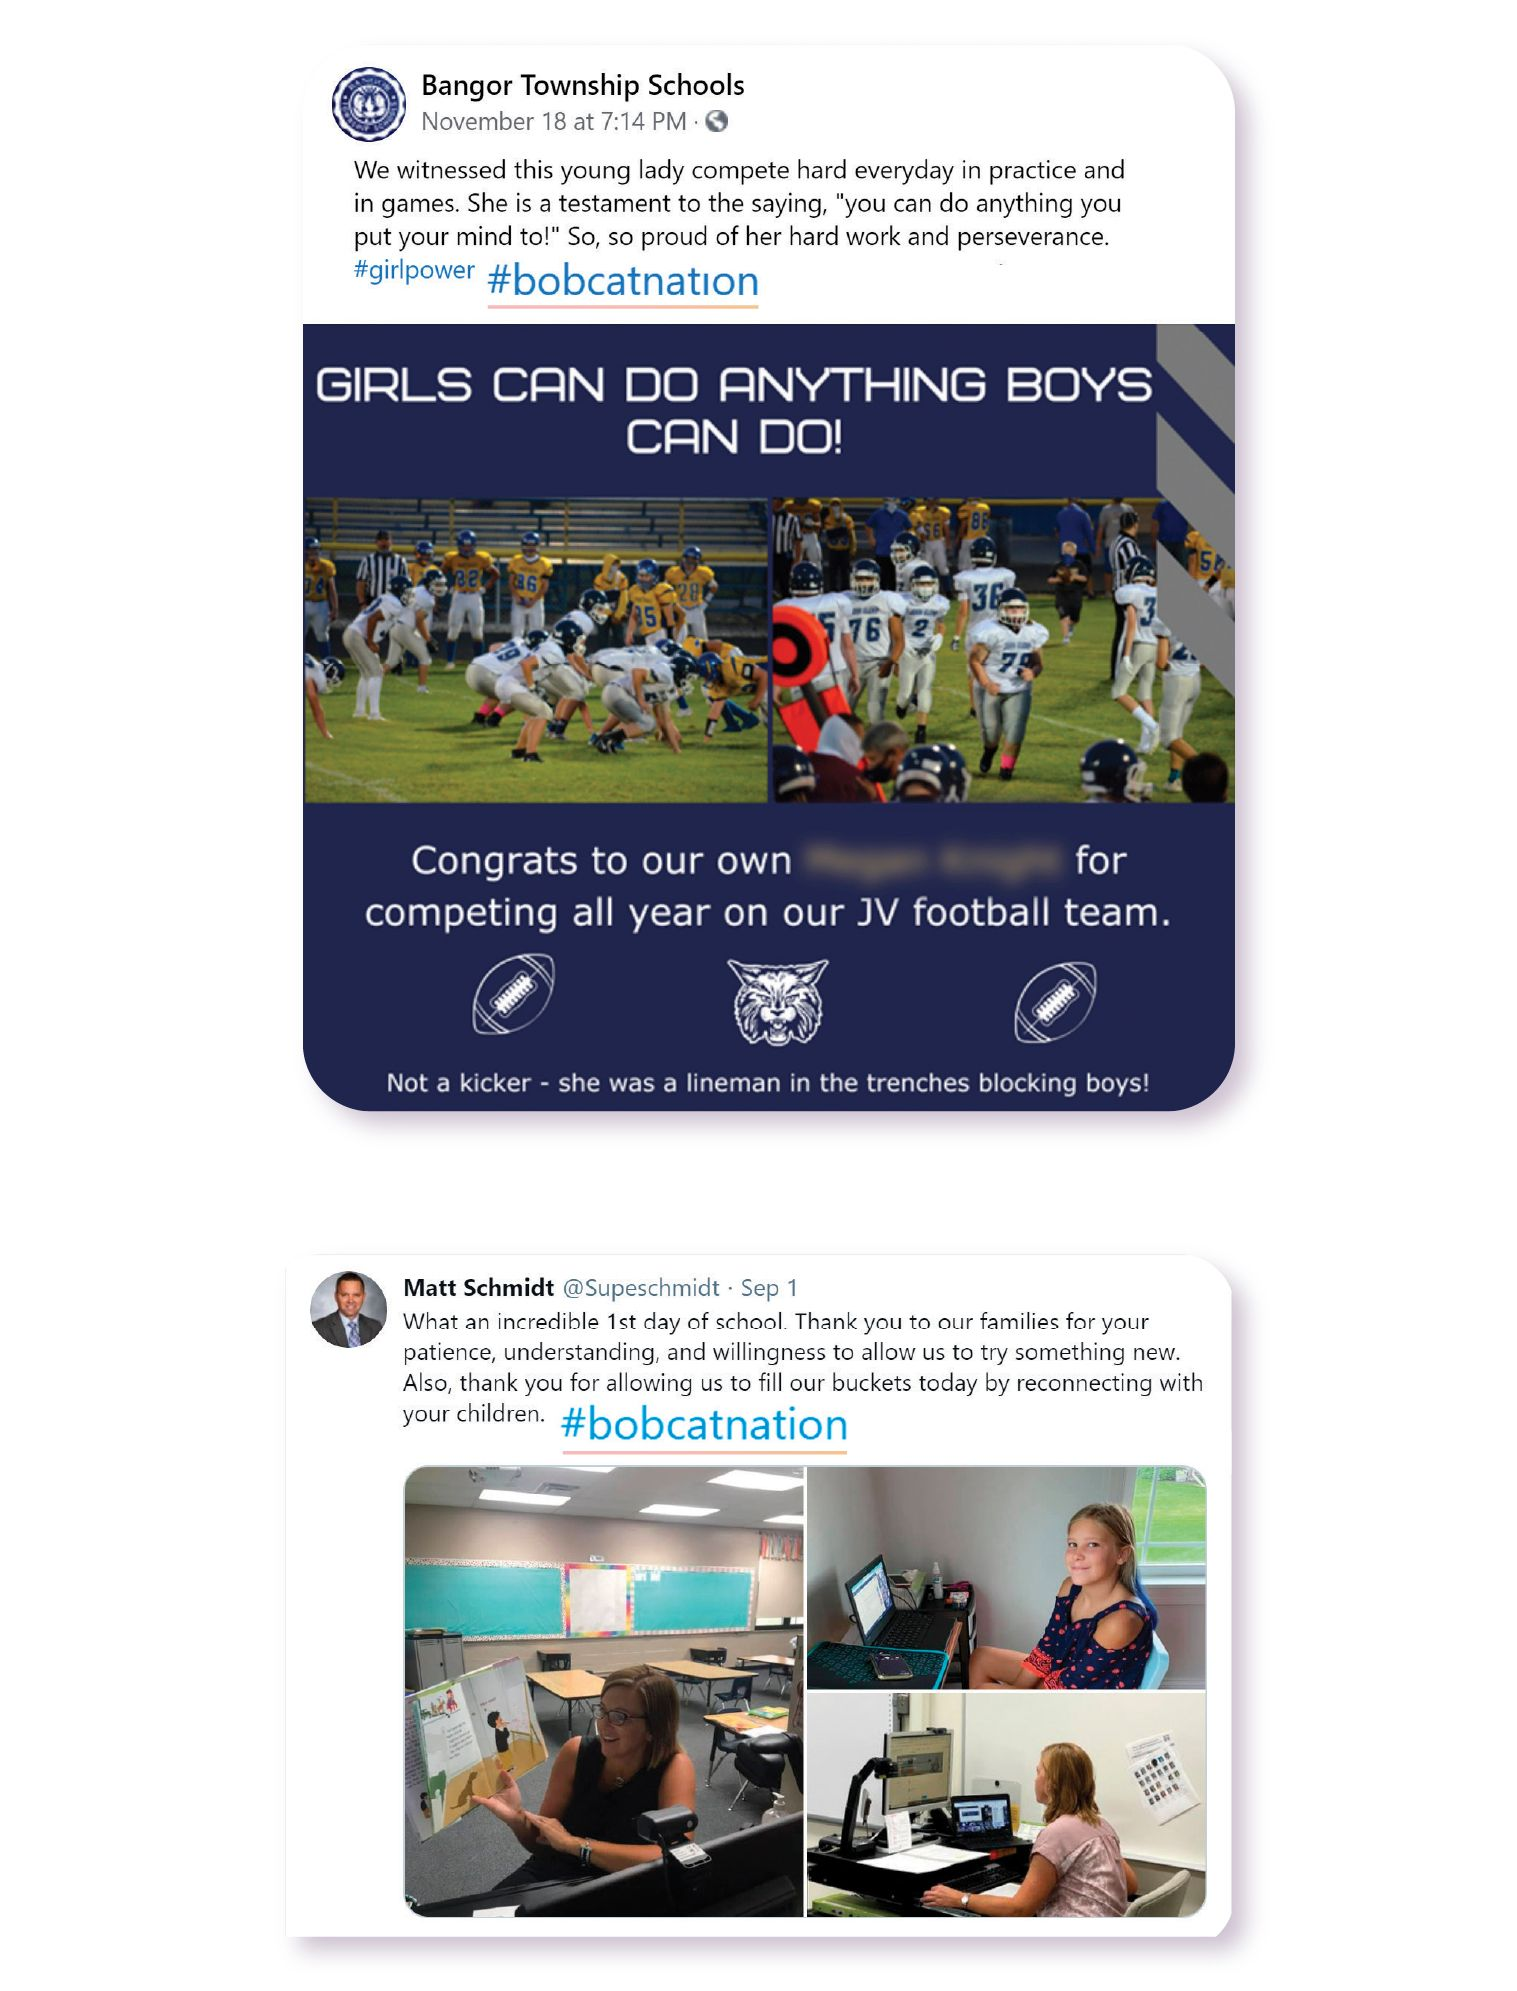 Images: Example of Bangor Township Schools using their hashtag @bobcatnation in a Facebook post celebrating student accomplishments on the athletic field as well as an example from Superintendent Matt Schmidt's Twitter feed.